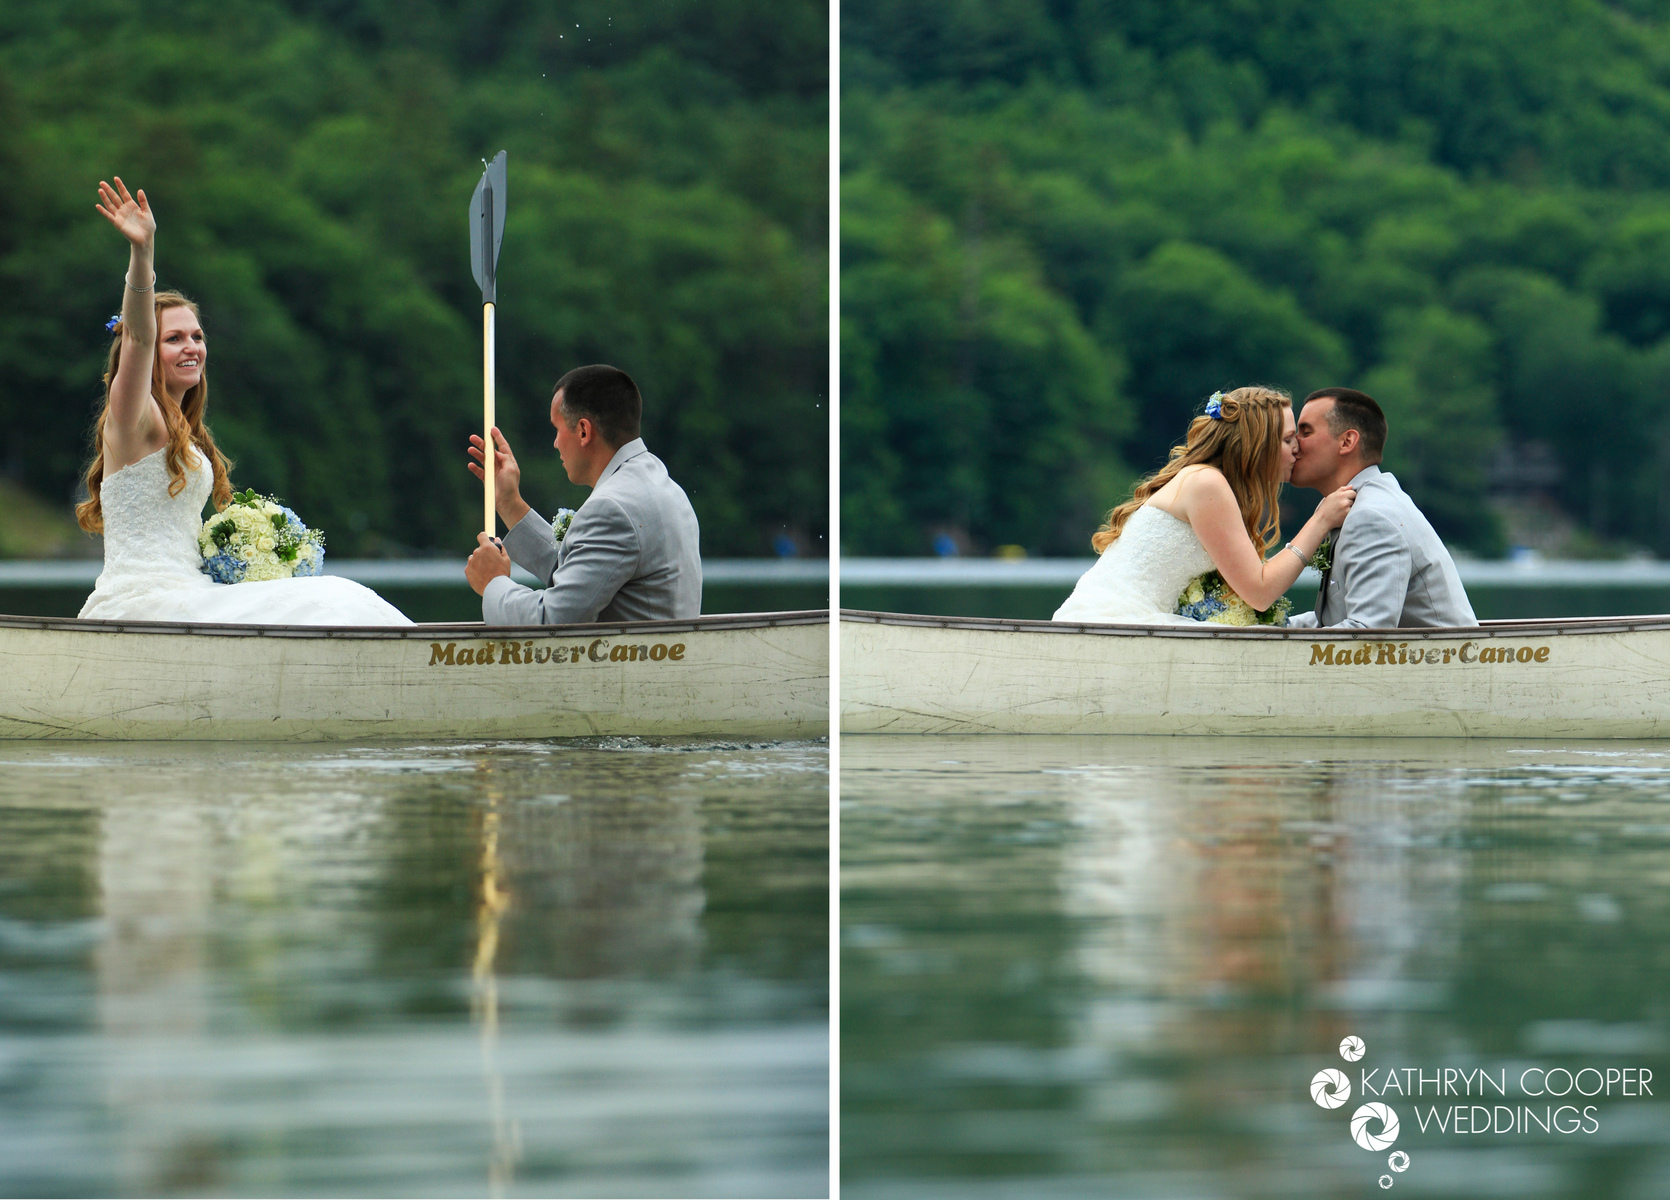 Canoeing wedding photo in Vermont with bride and groom on boat in lake